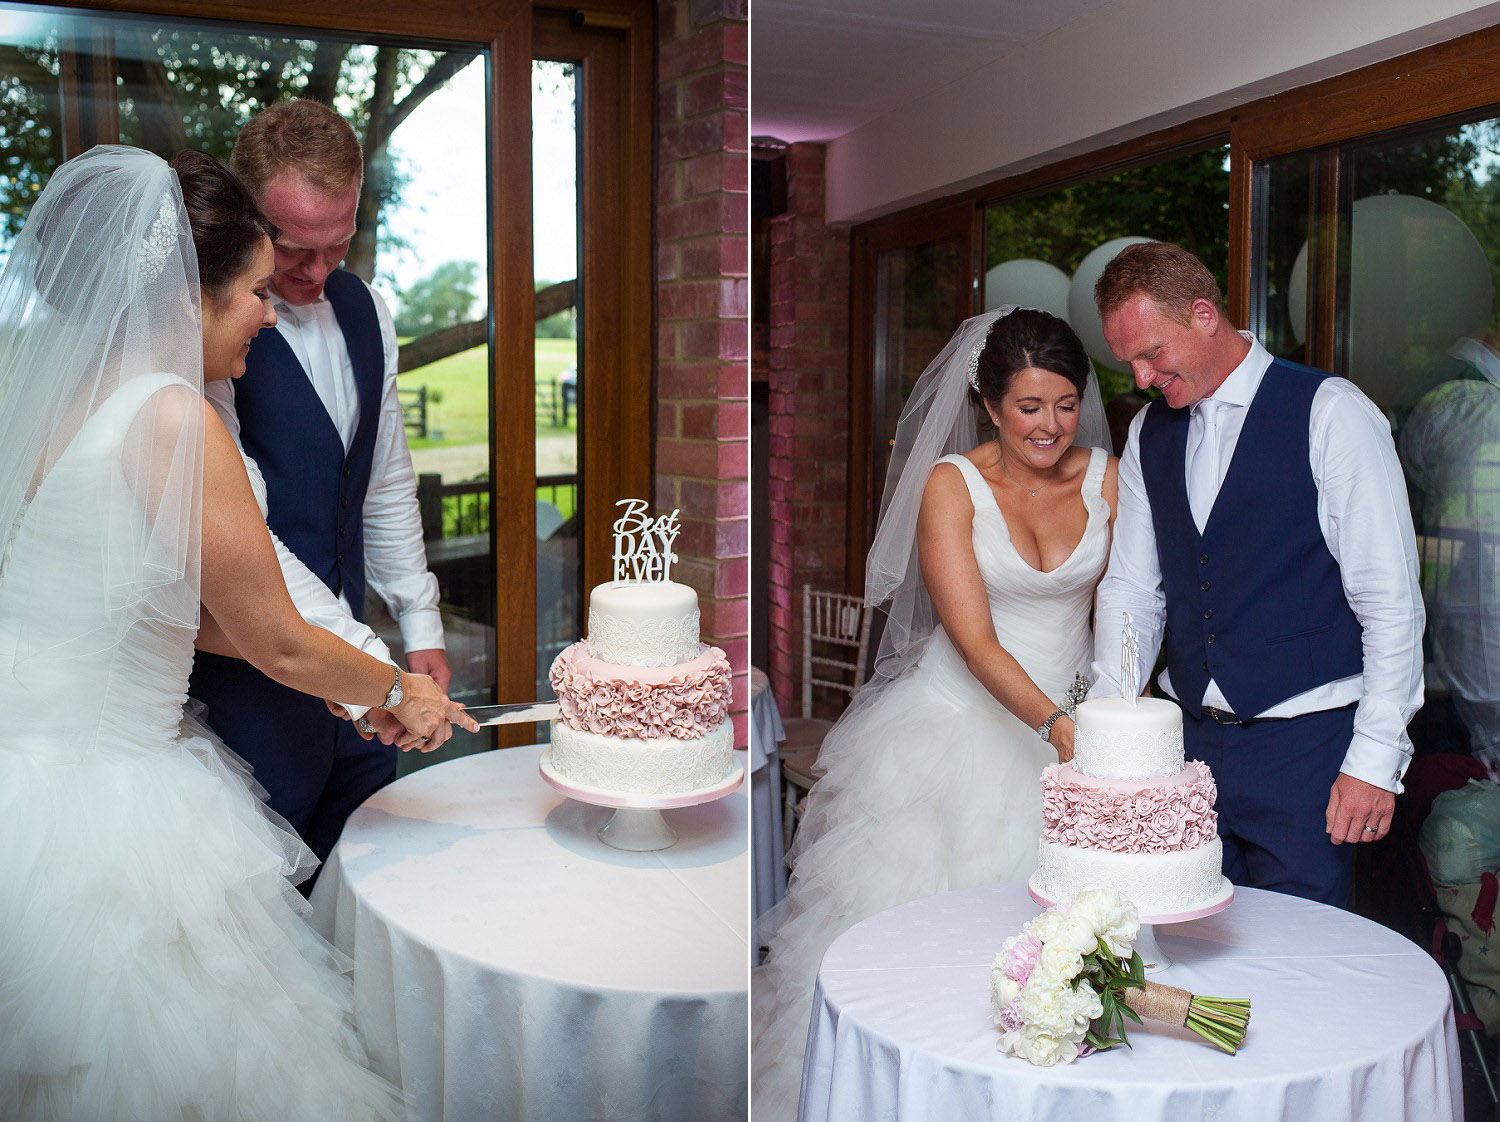 Wedding at Old Brook Barn - Cake Cutting